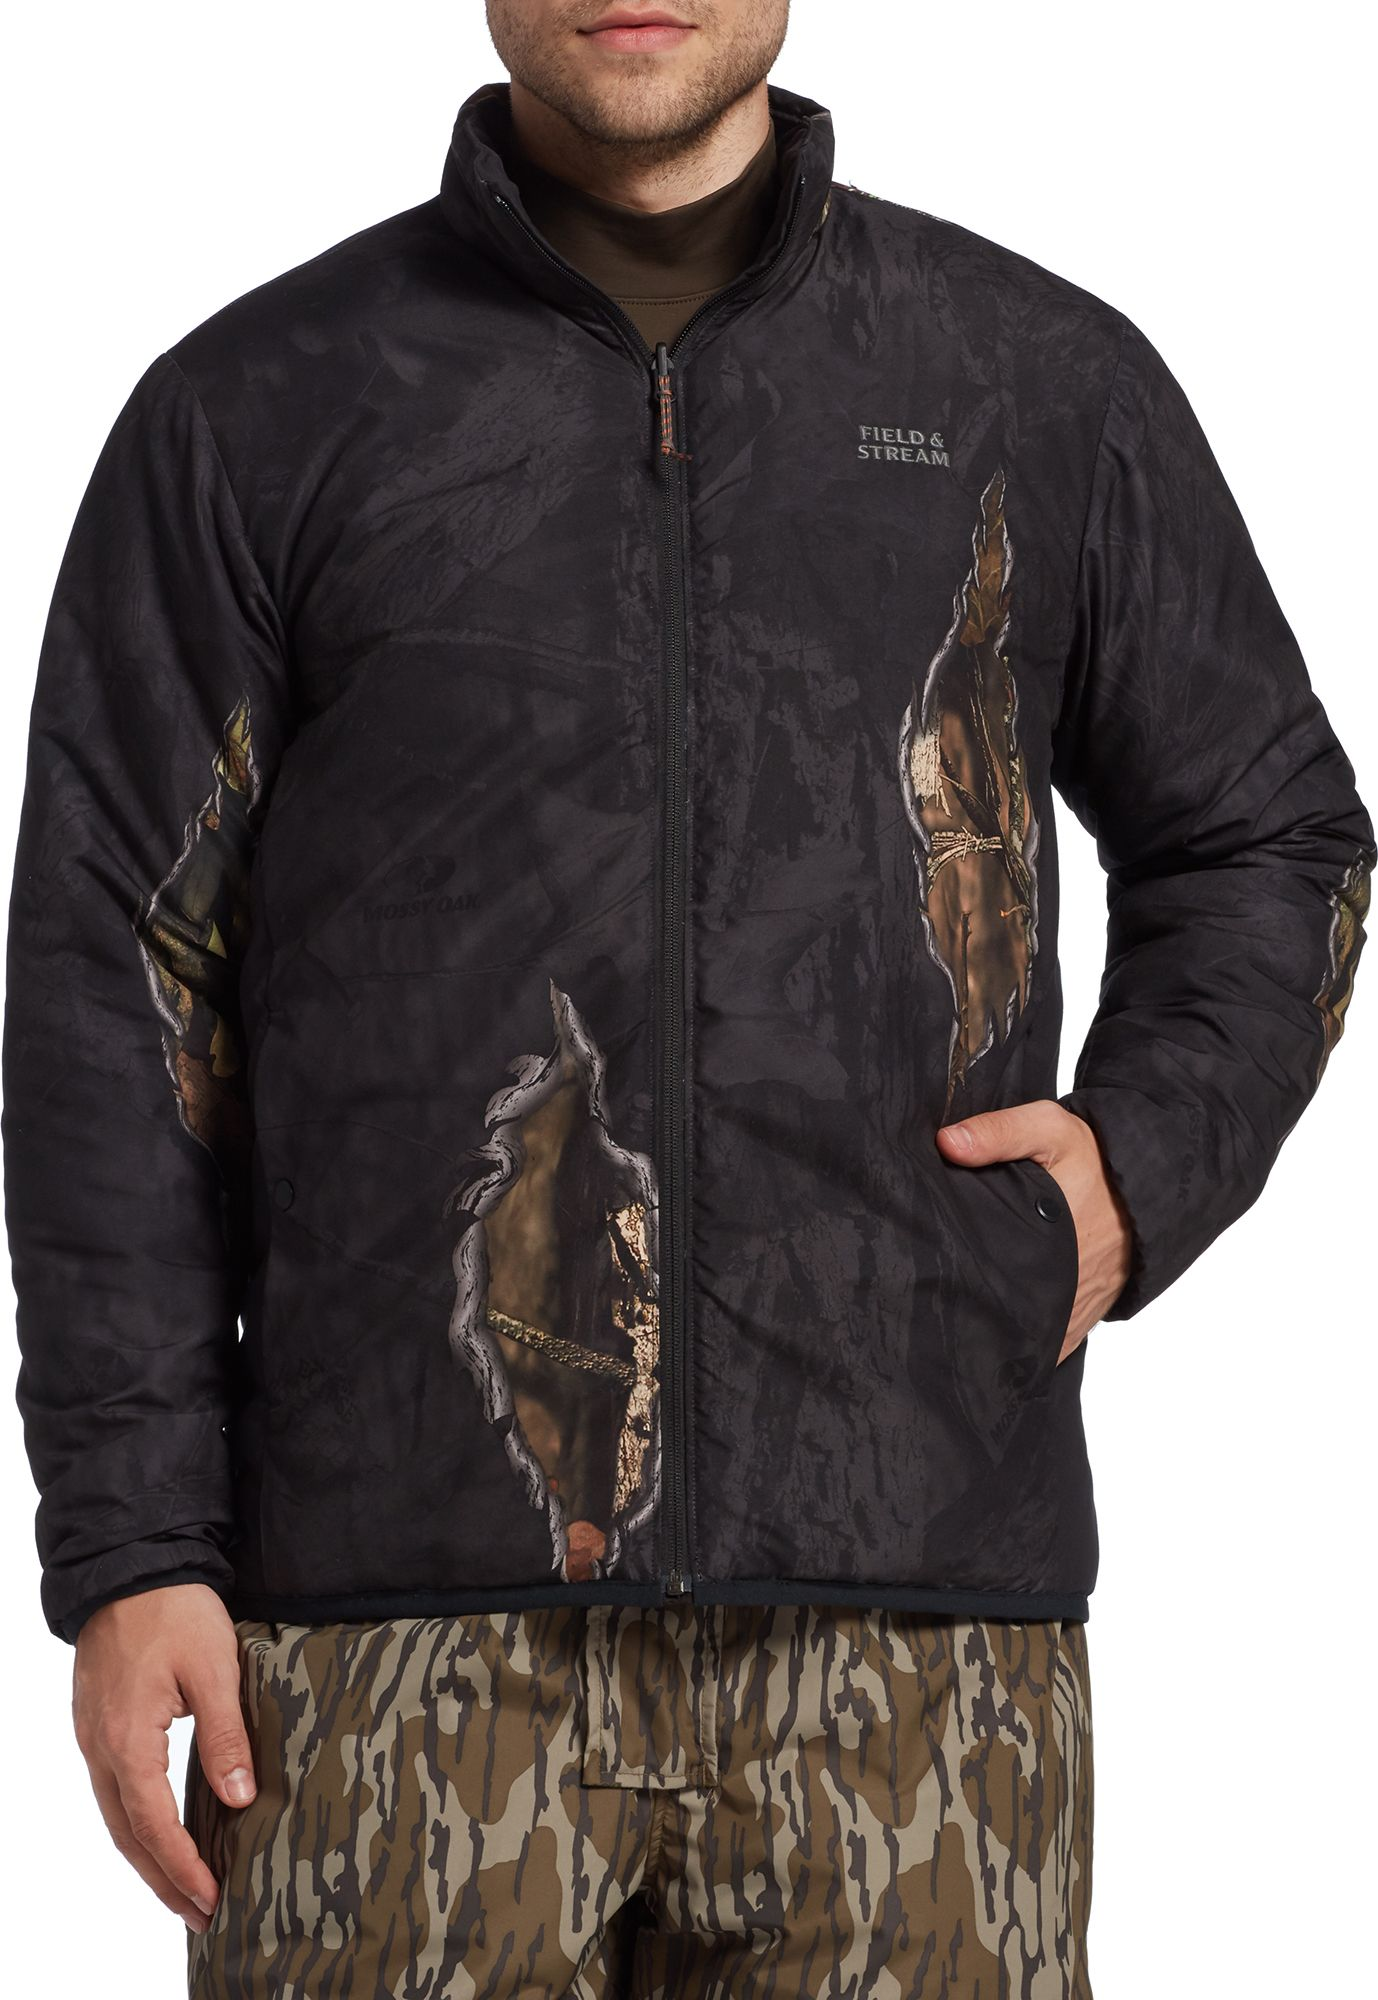 Field & Stream Men's Command Hunt Waterfowl 6 in 1 Reversible Hunting Jacket, Size: Medium, Brown